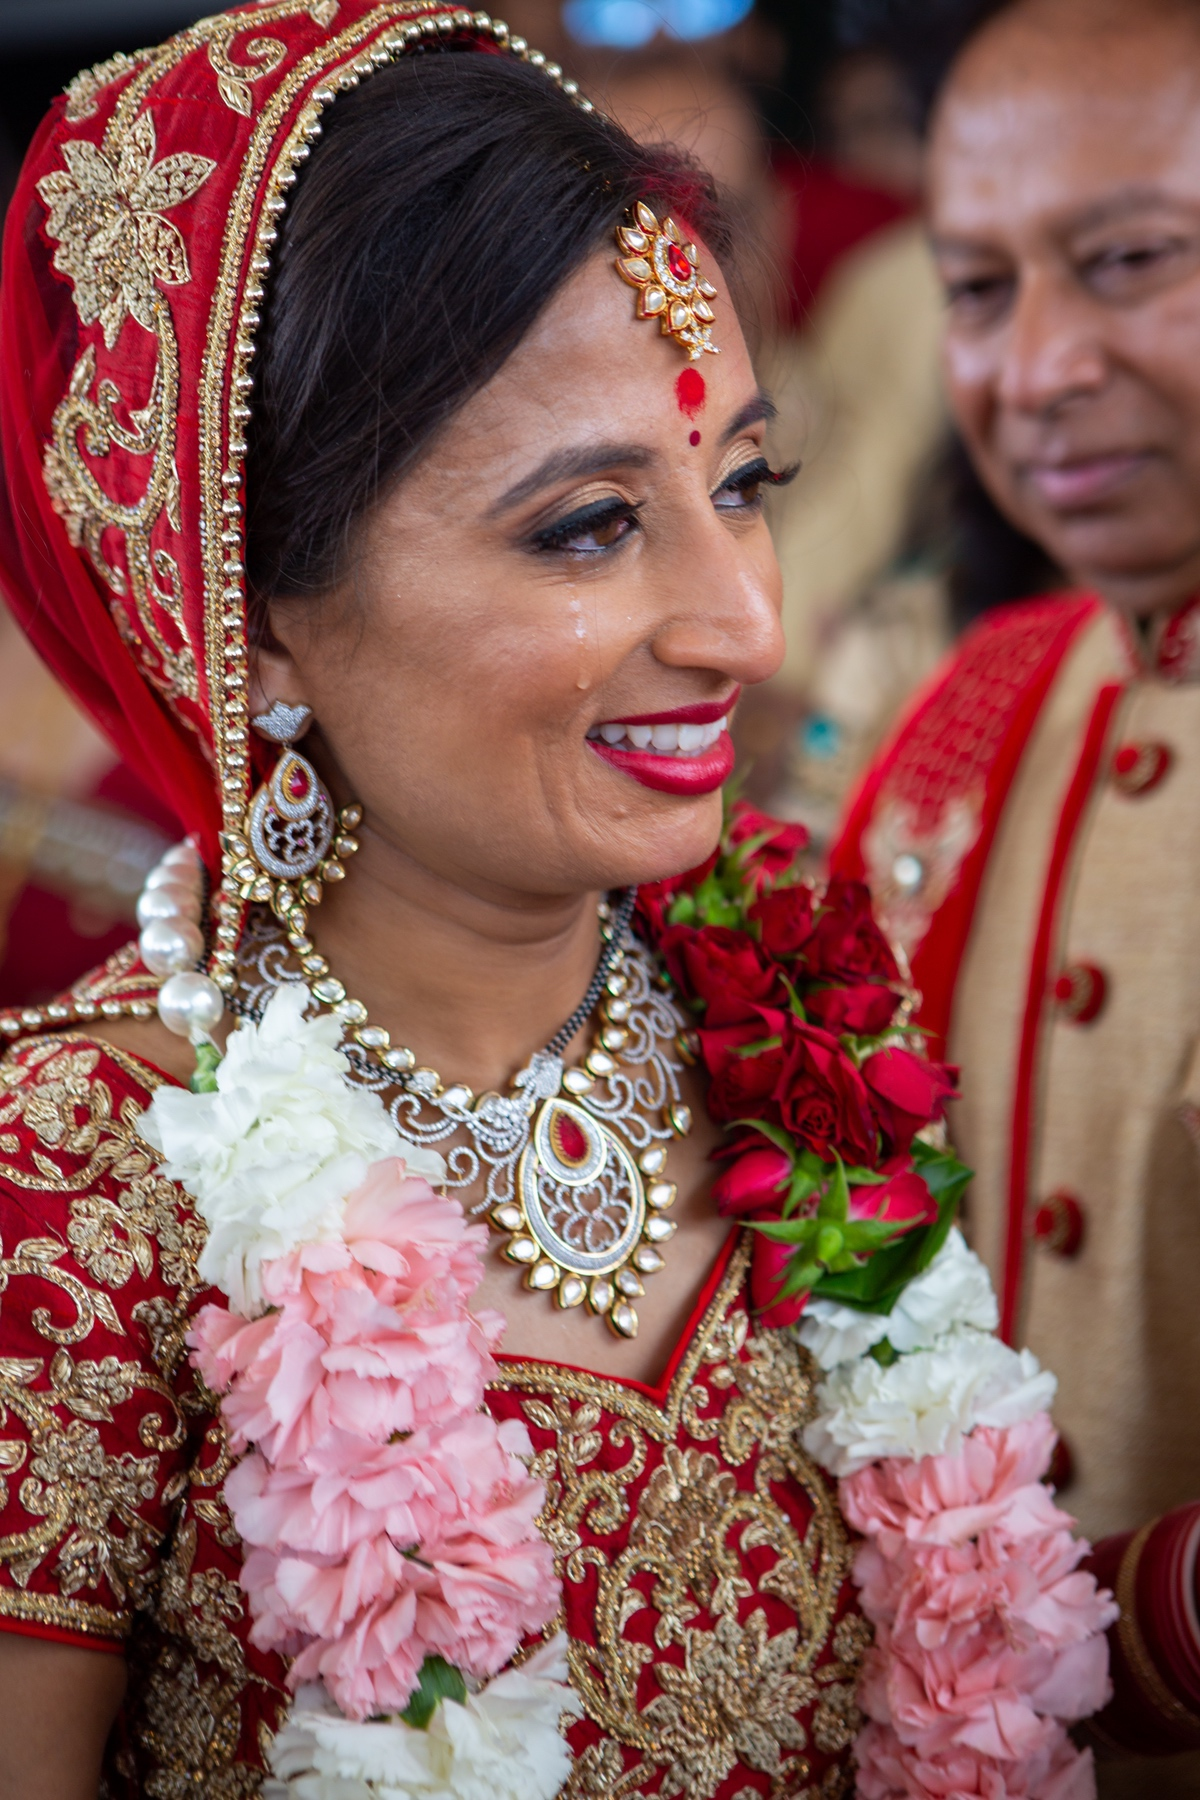 Le Cape Weddings - South Asian Wedding - Chicago Wedding Photographer P&V-76.jpg